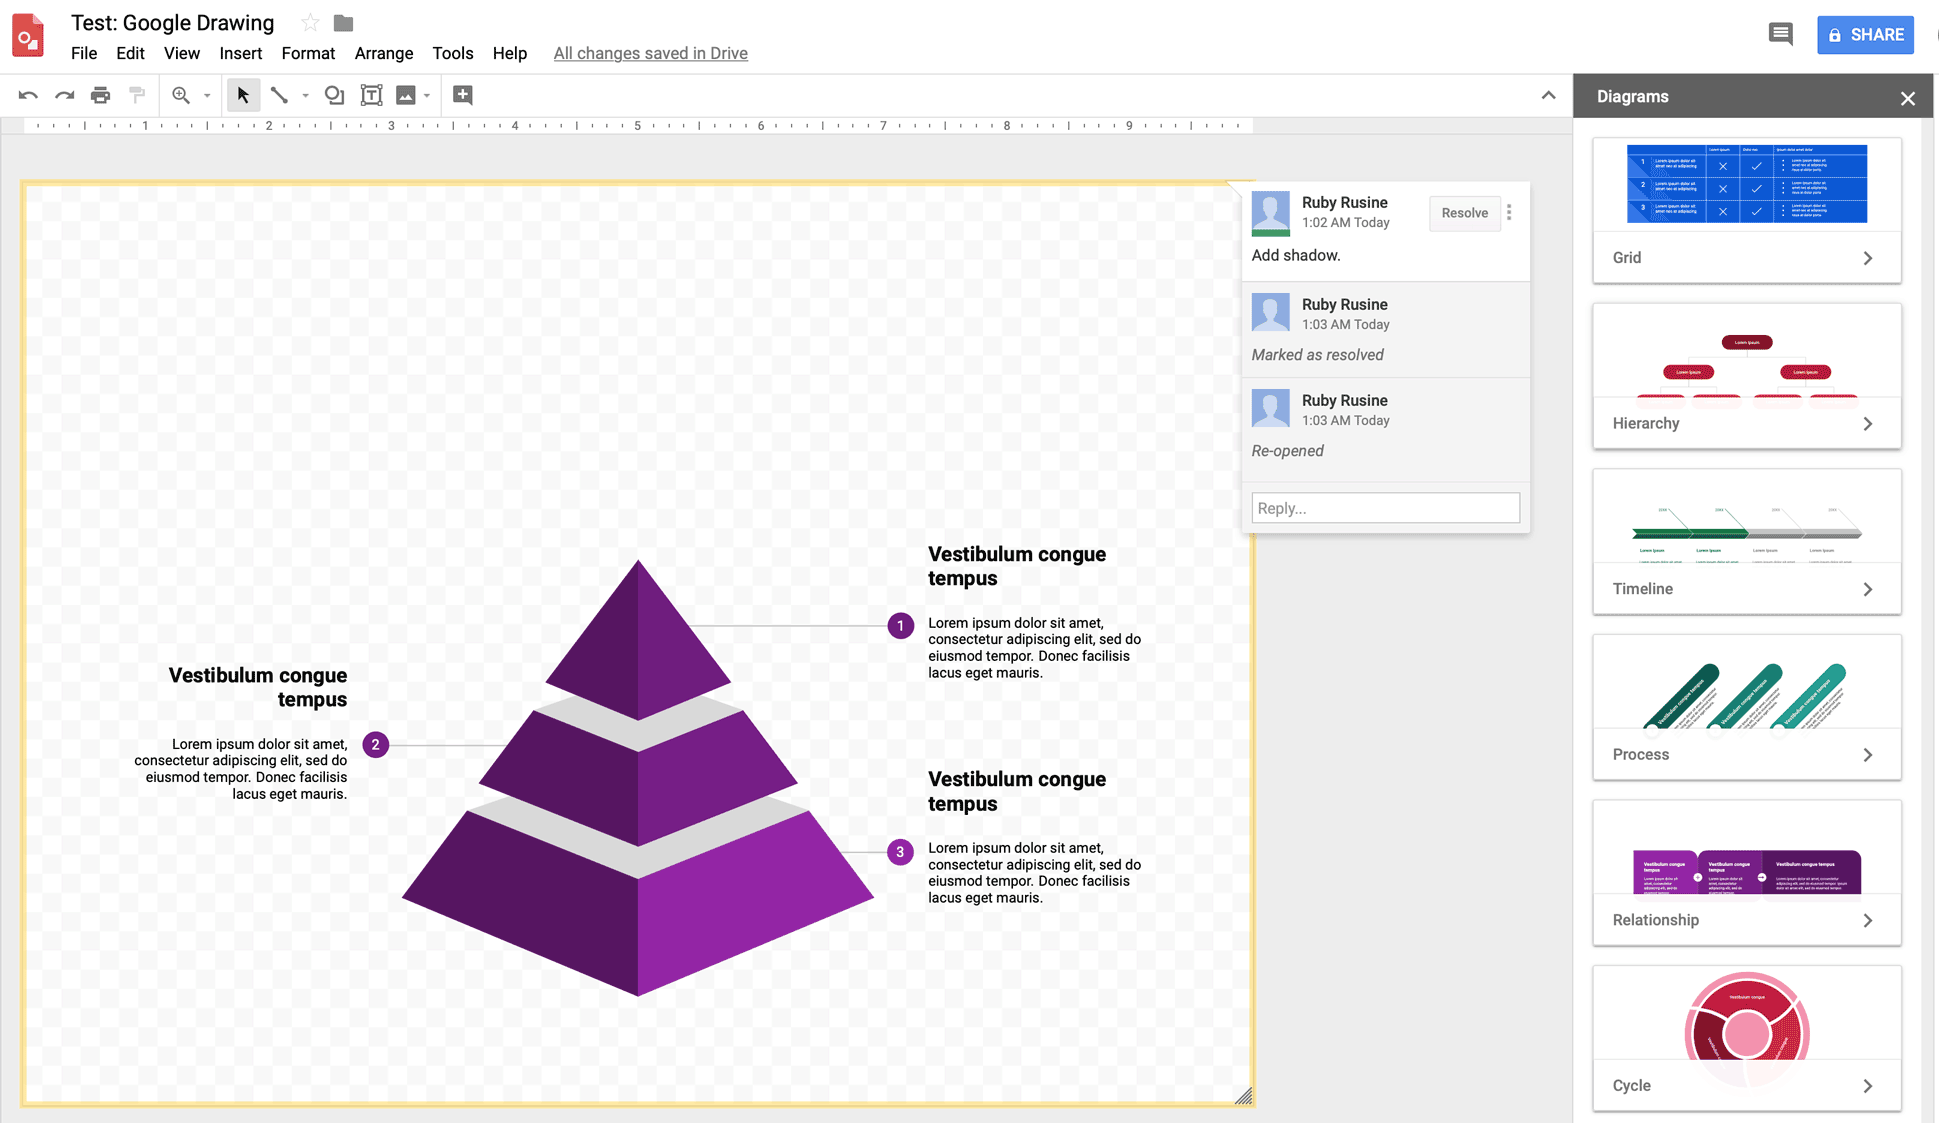 google drawing visual tool